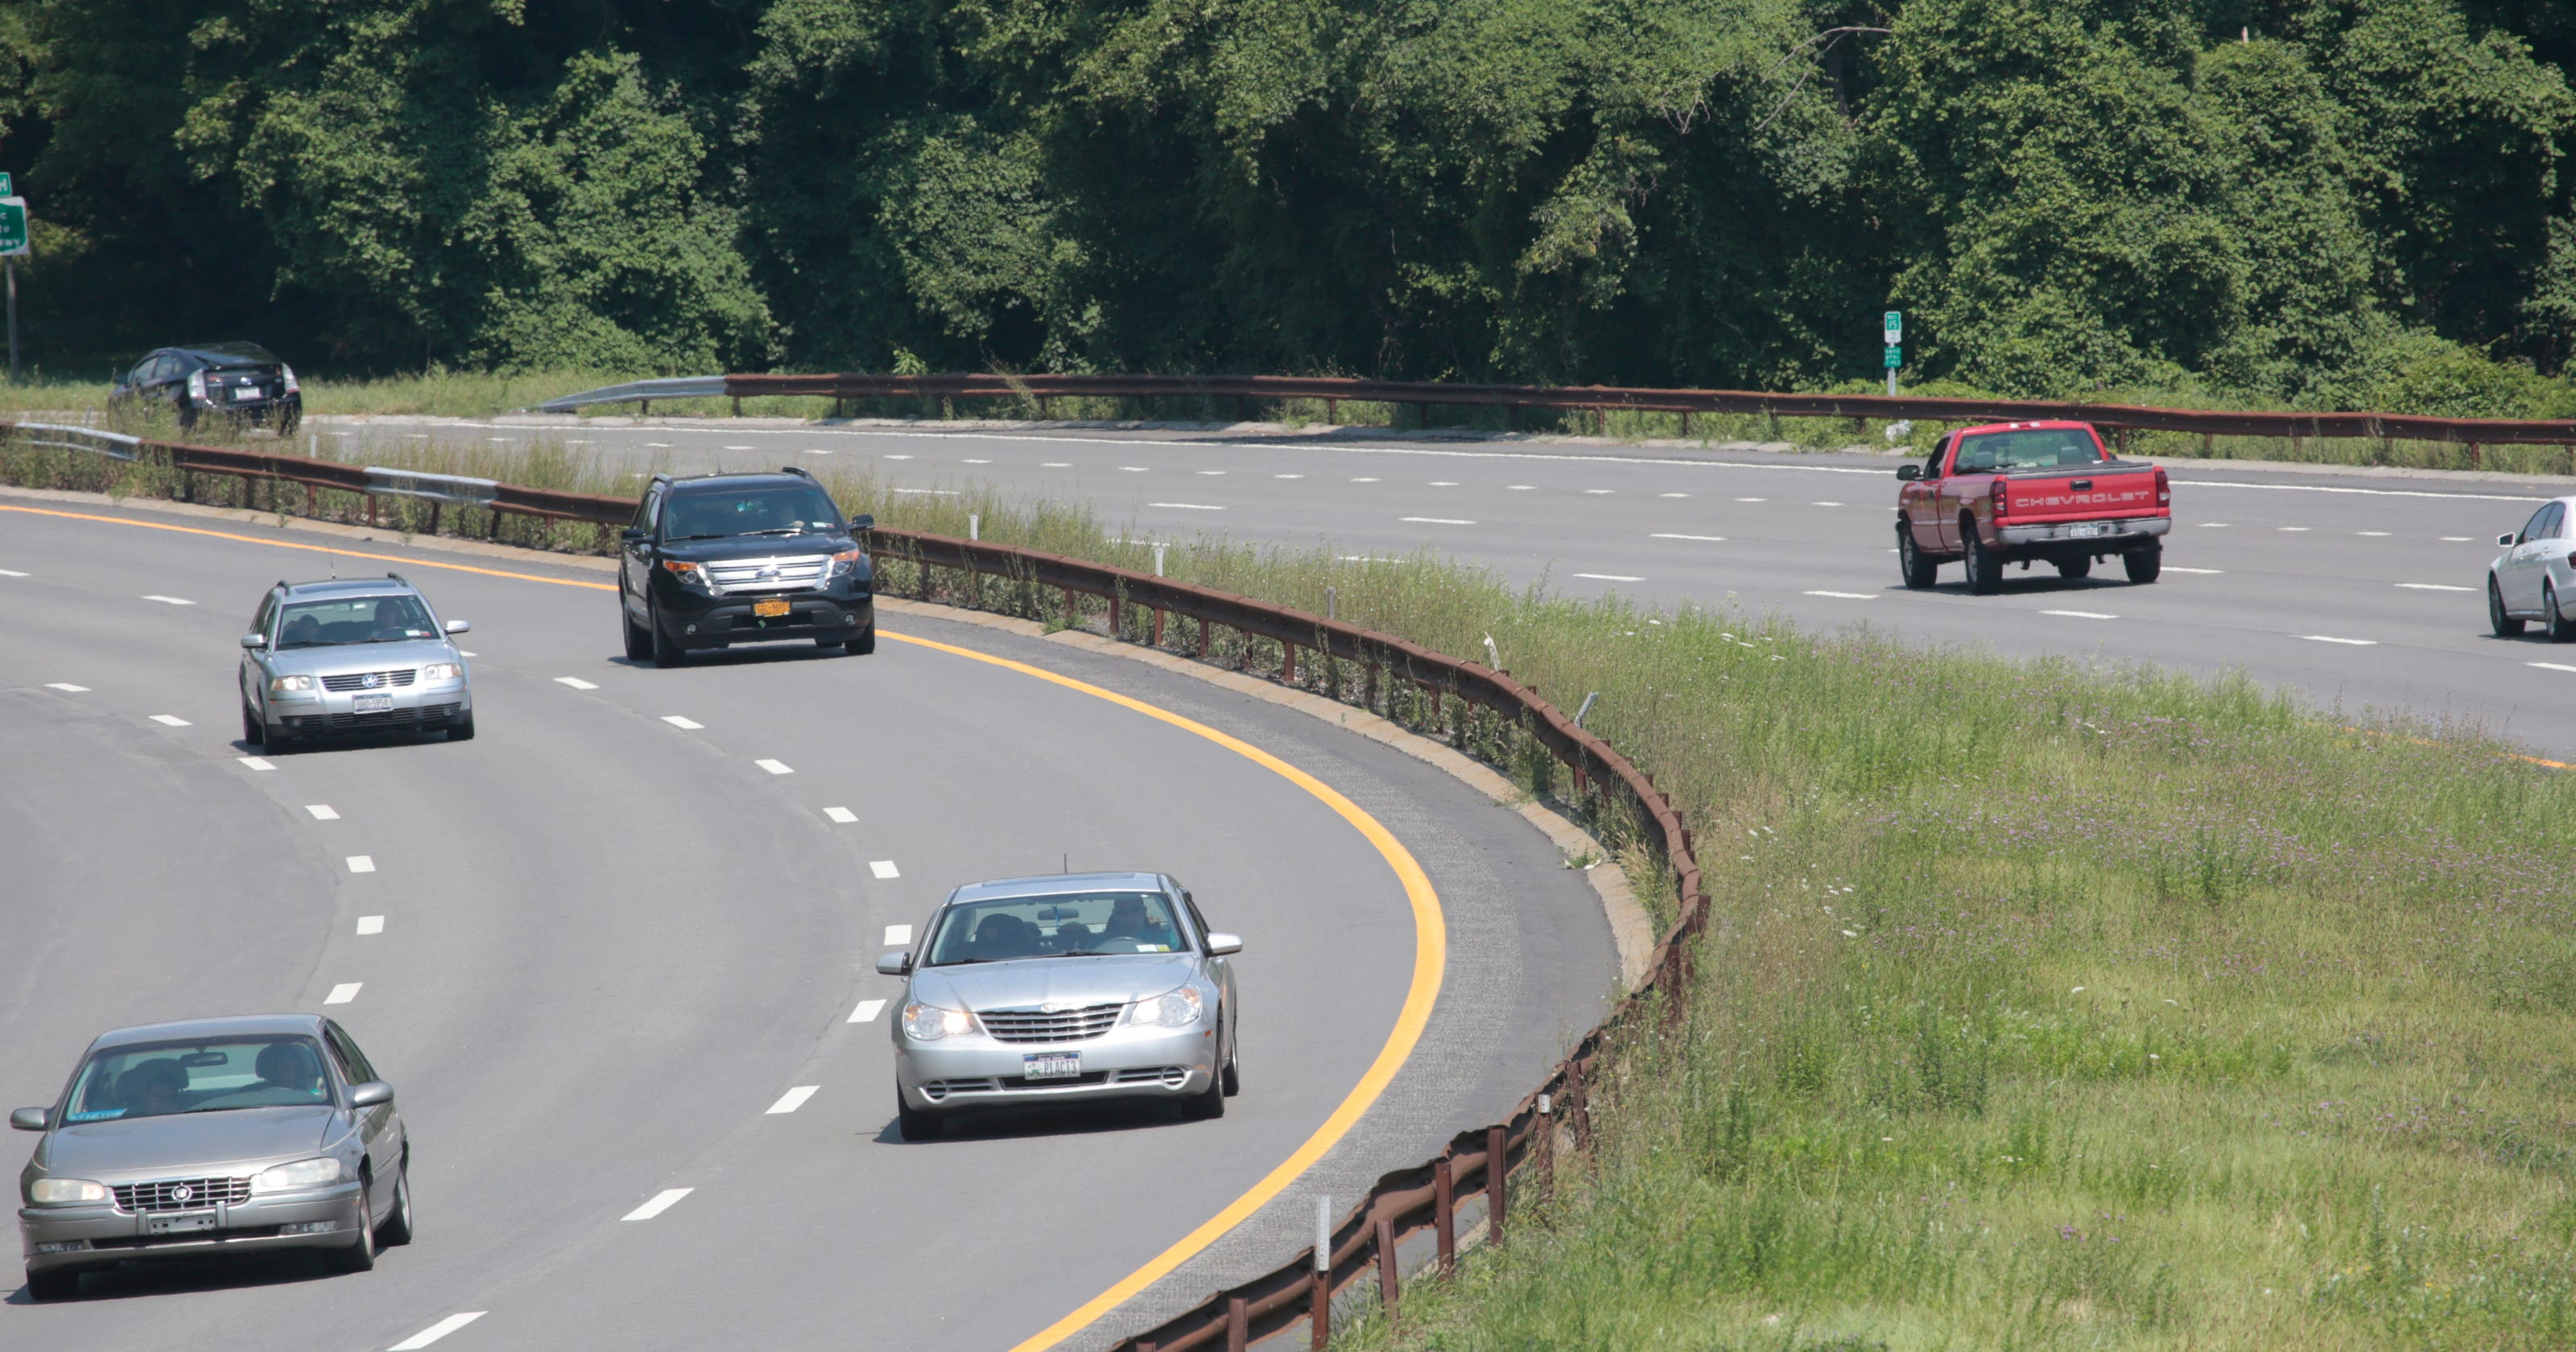 Parkway or speedway? Drivers question Taconic safety